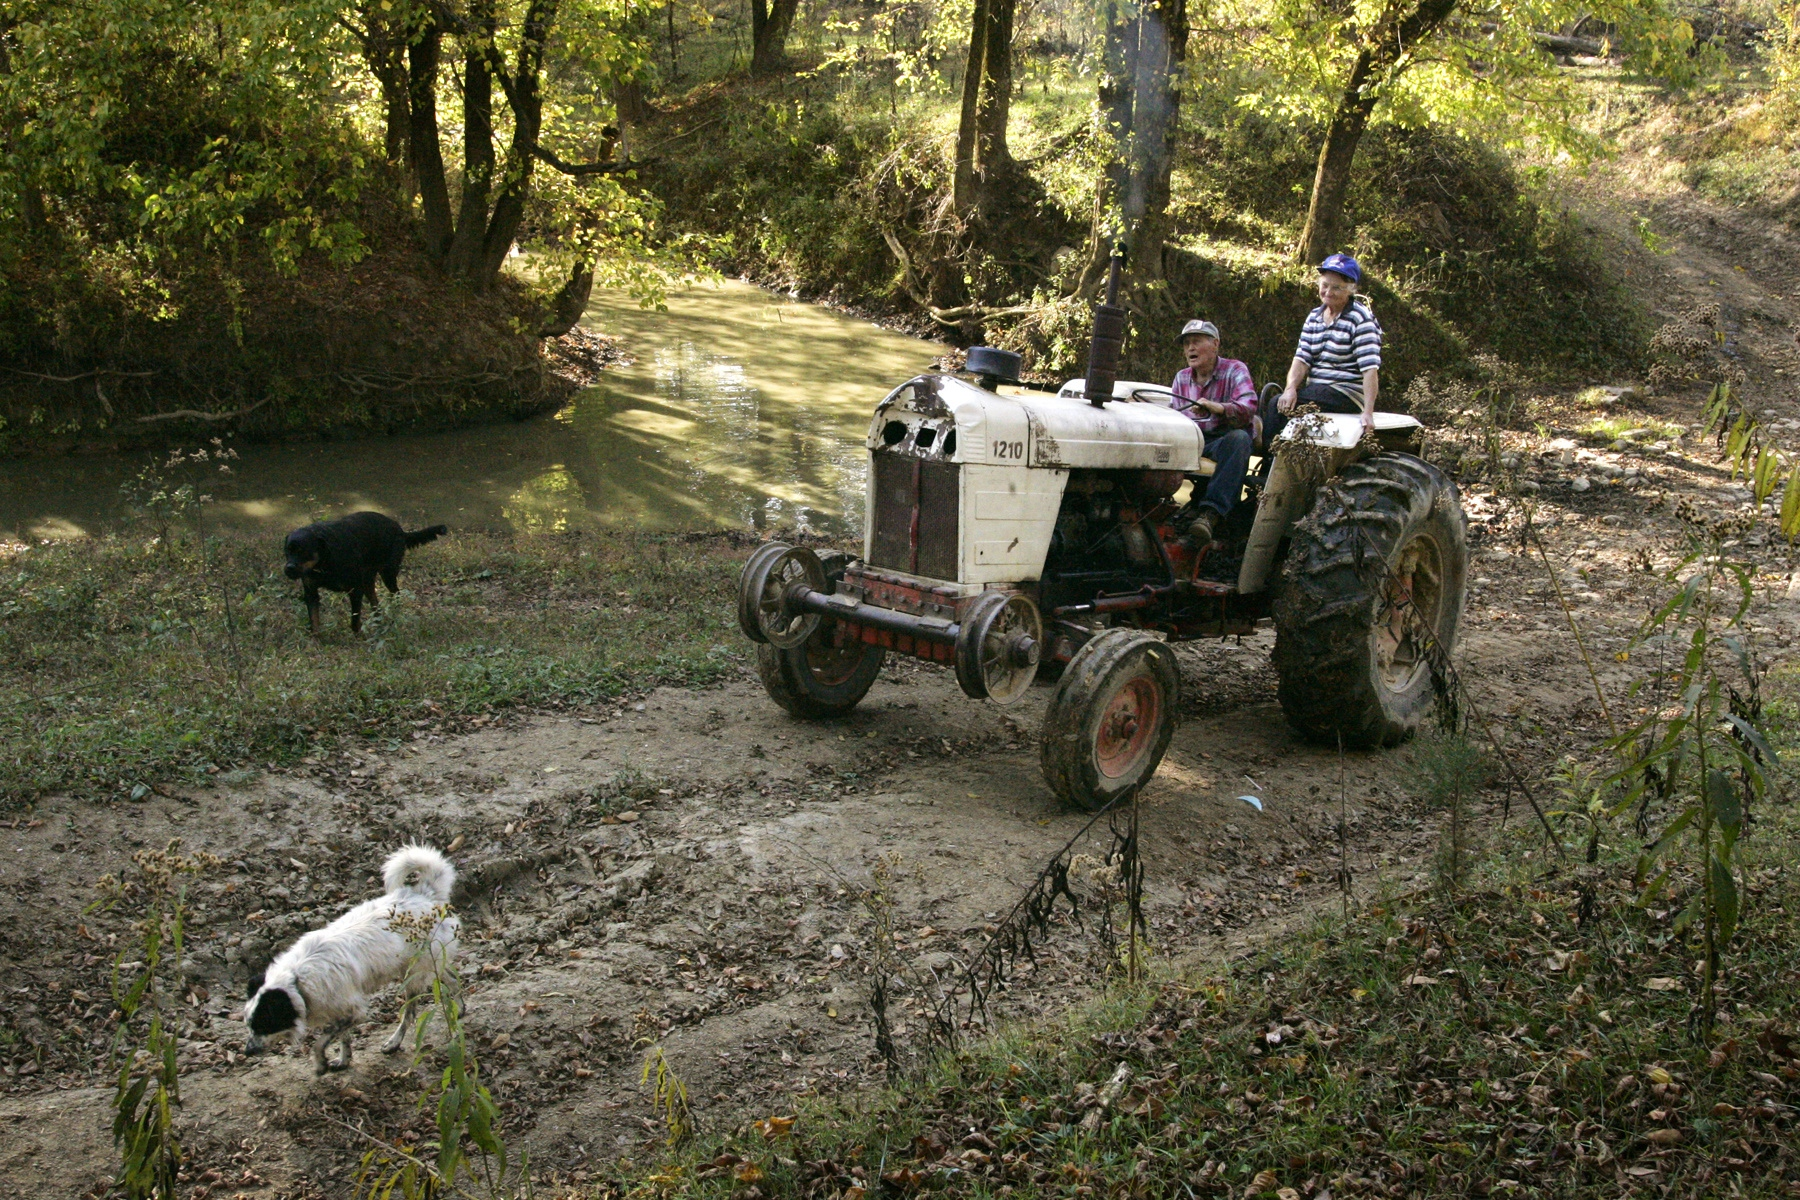 Bert and Louise Buntain, inseparable since marrying in 1942, ride home on their 1954 David Brown tractor after calling their cows.